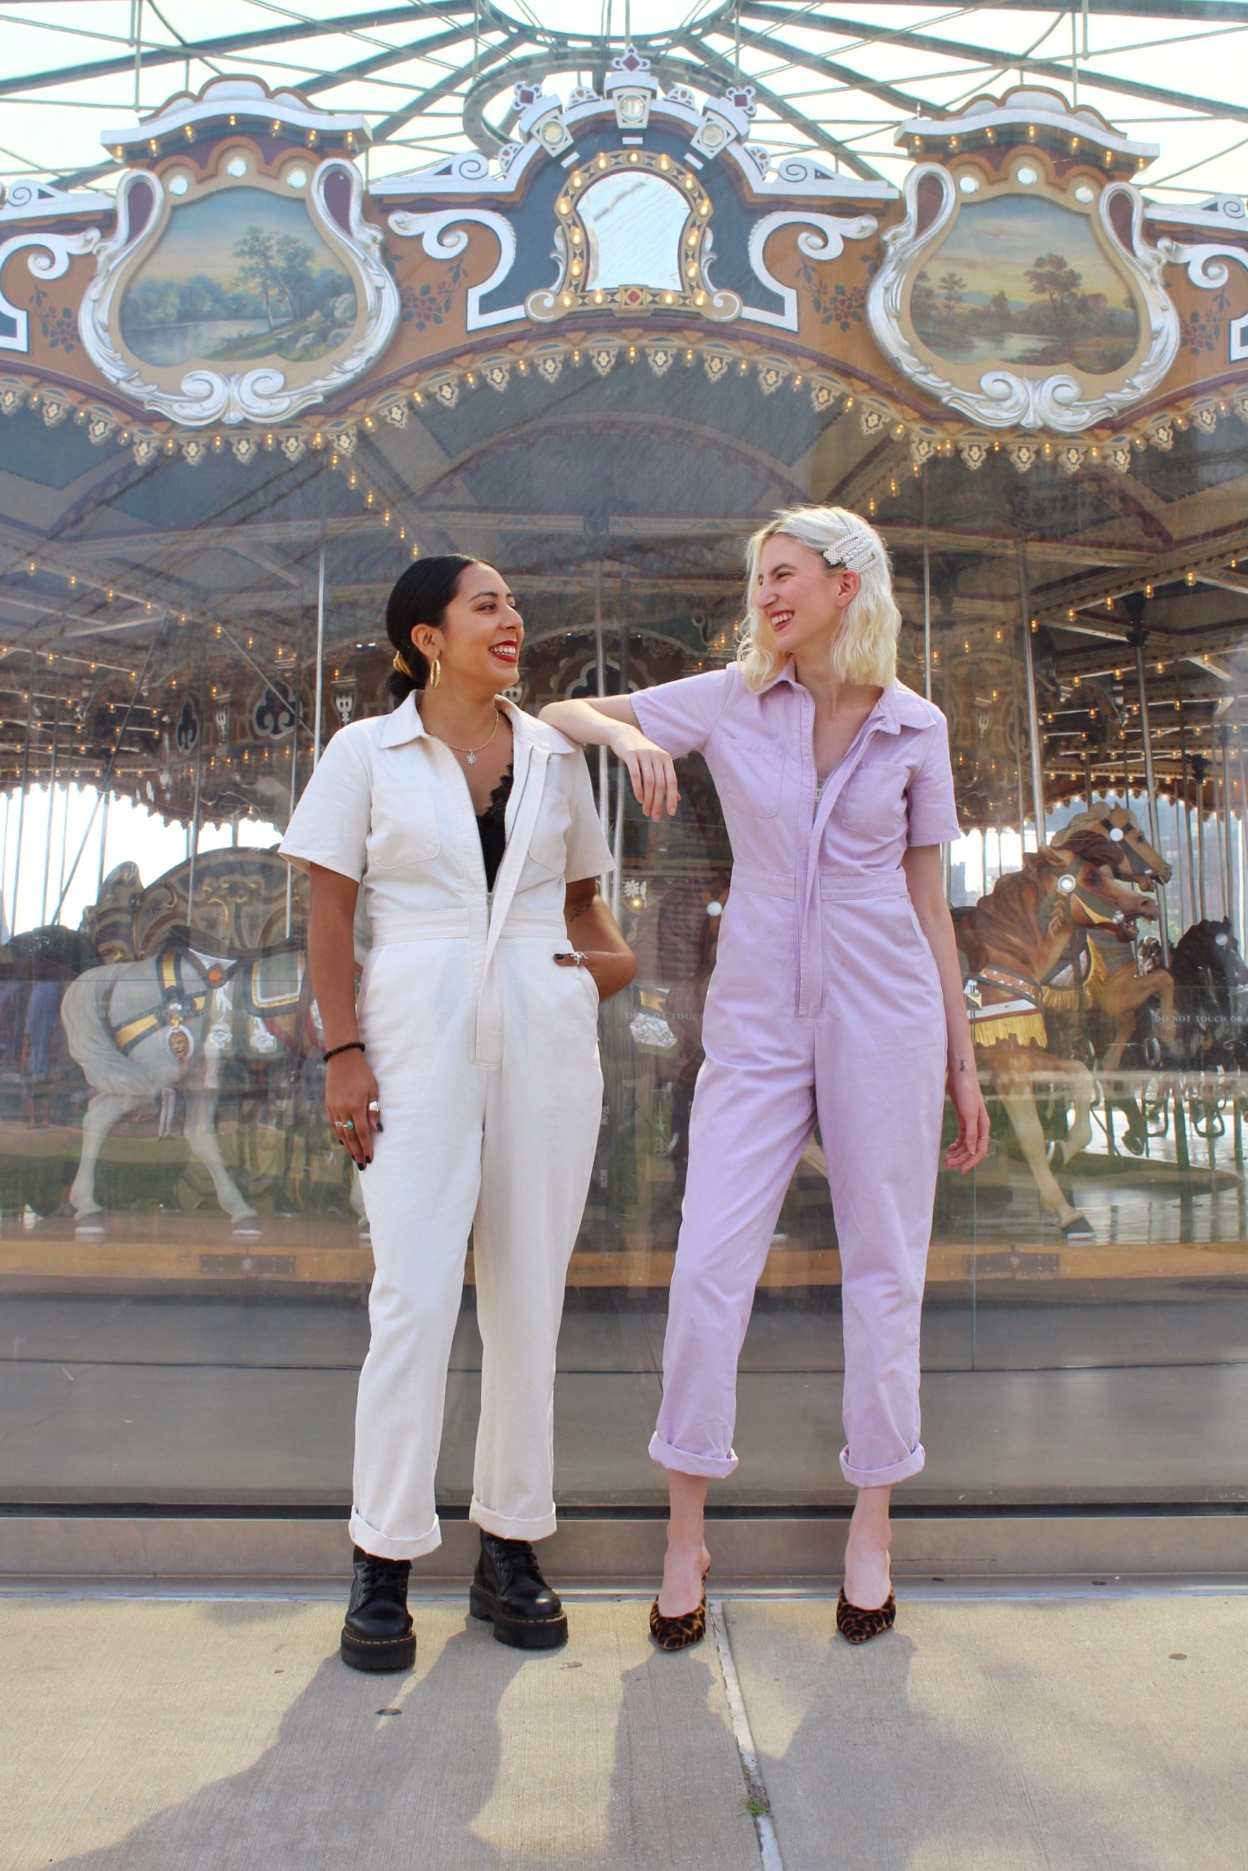 Her style: boiler suits with Lulu gamez, How to style a utility jumpsuit and fashion interview with lulu gamez by Audra Koch, Southern New Yorker